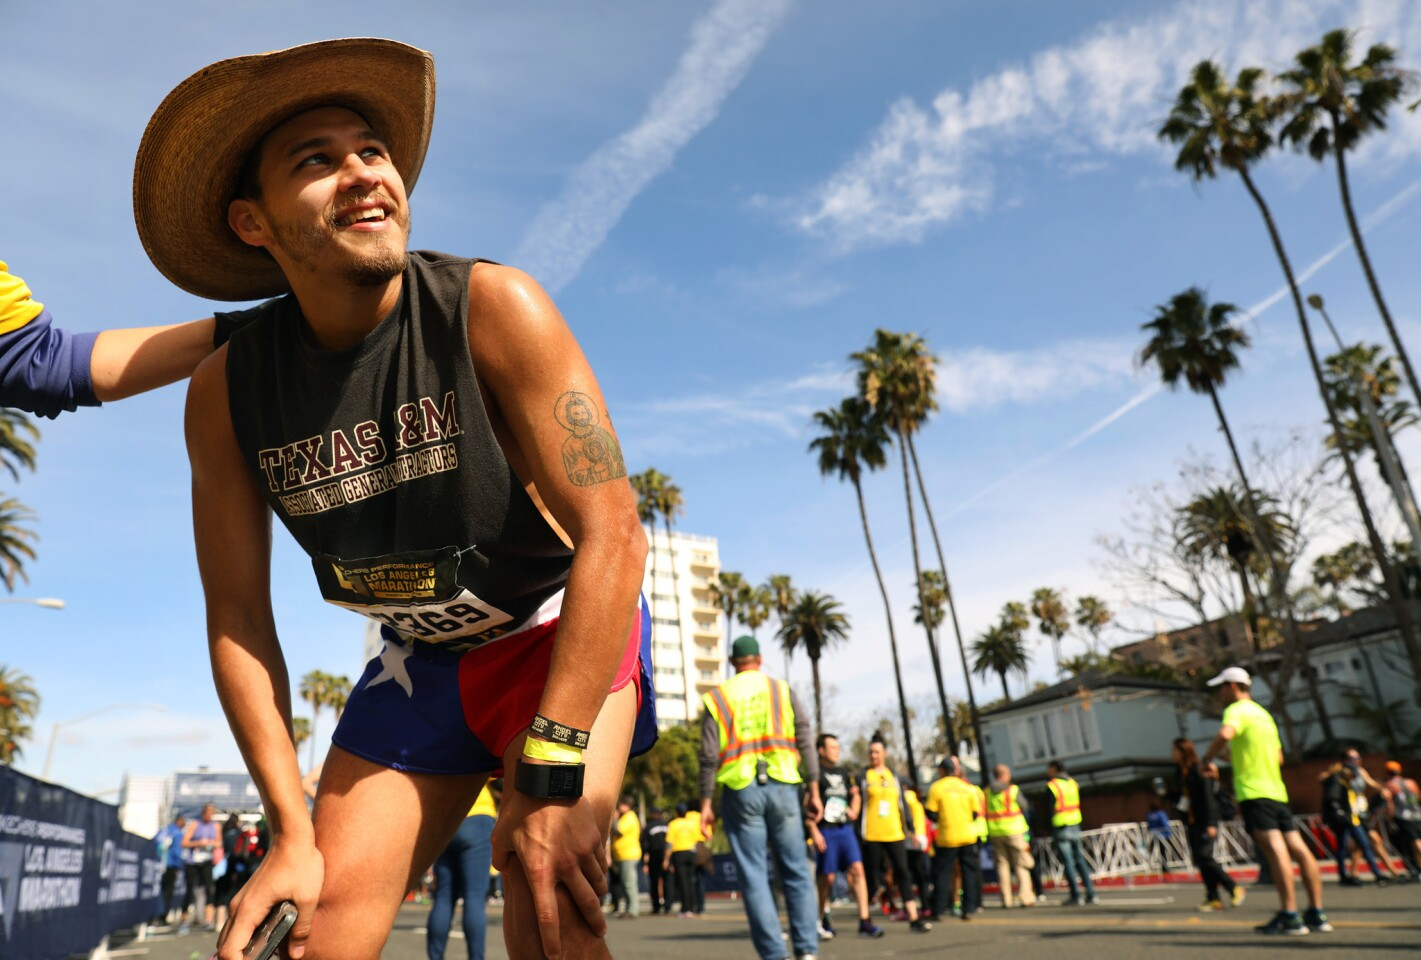 Race participant Jose Lara of Houston, Texas, catches his breath after finishing the L.A. Marathon on Sunday.